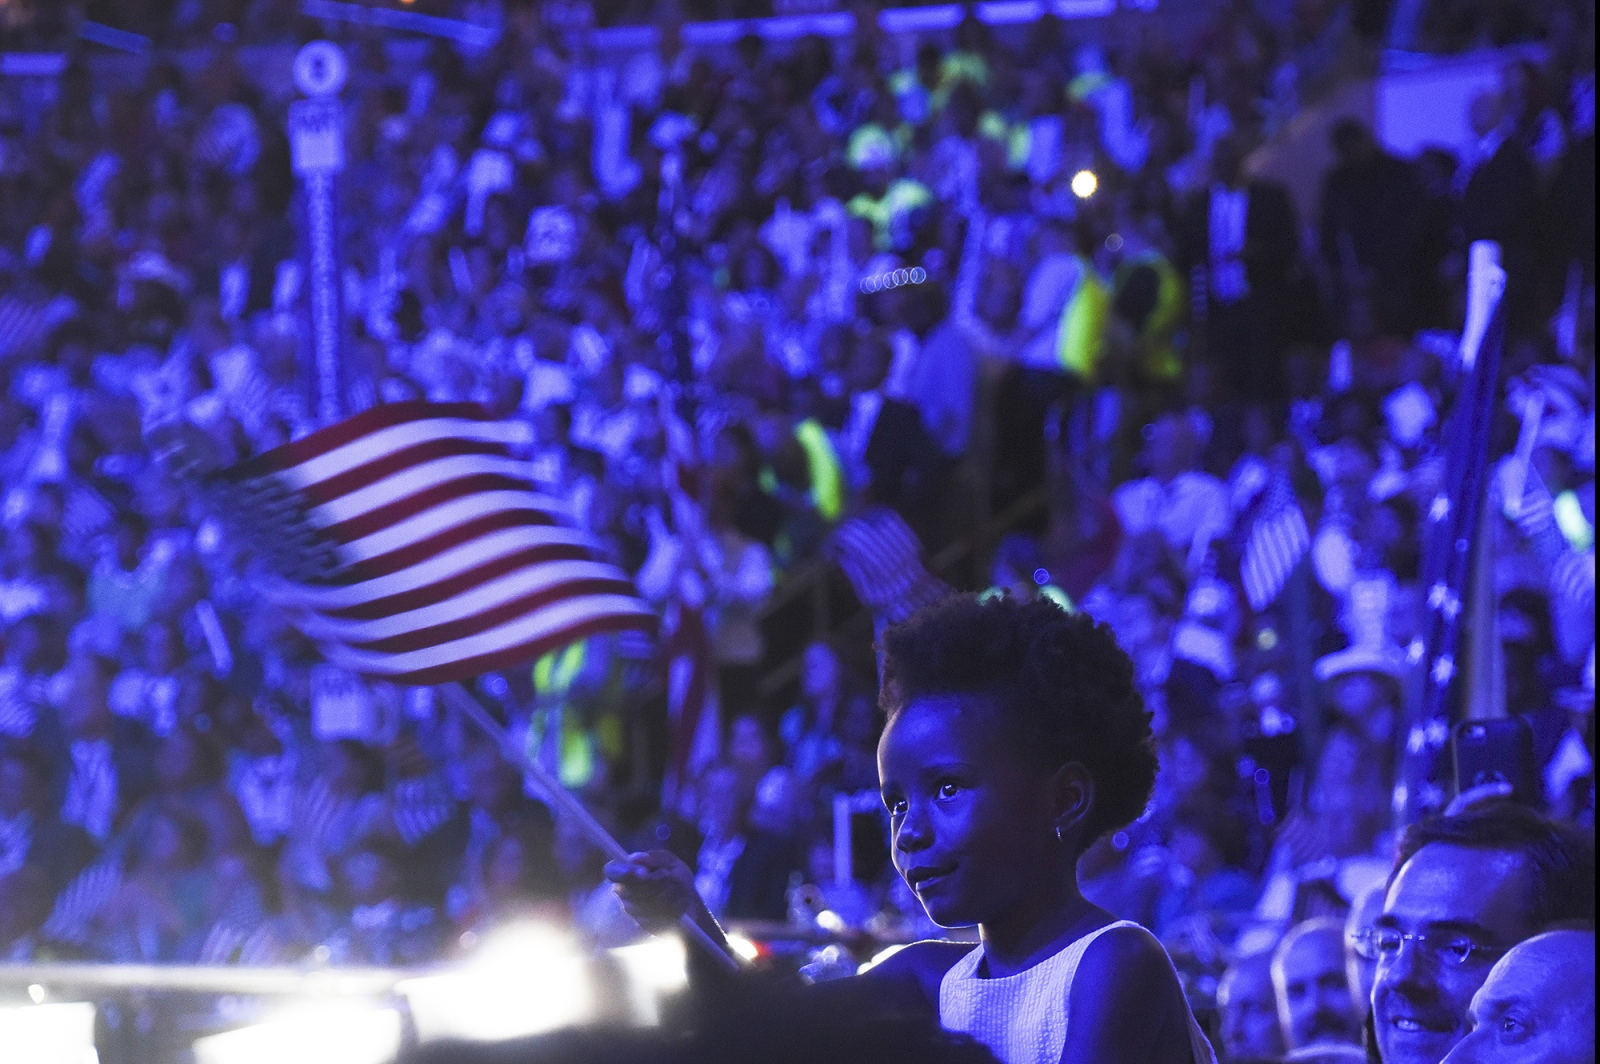 Philadelphia- A young girl is hoisted on the shoulders of her father as Michelle Obama takes the stage at the Democratic National Convention.